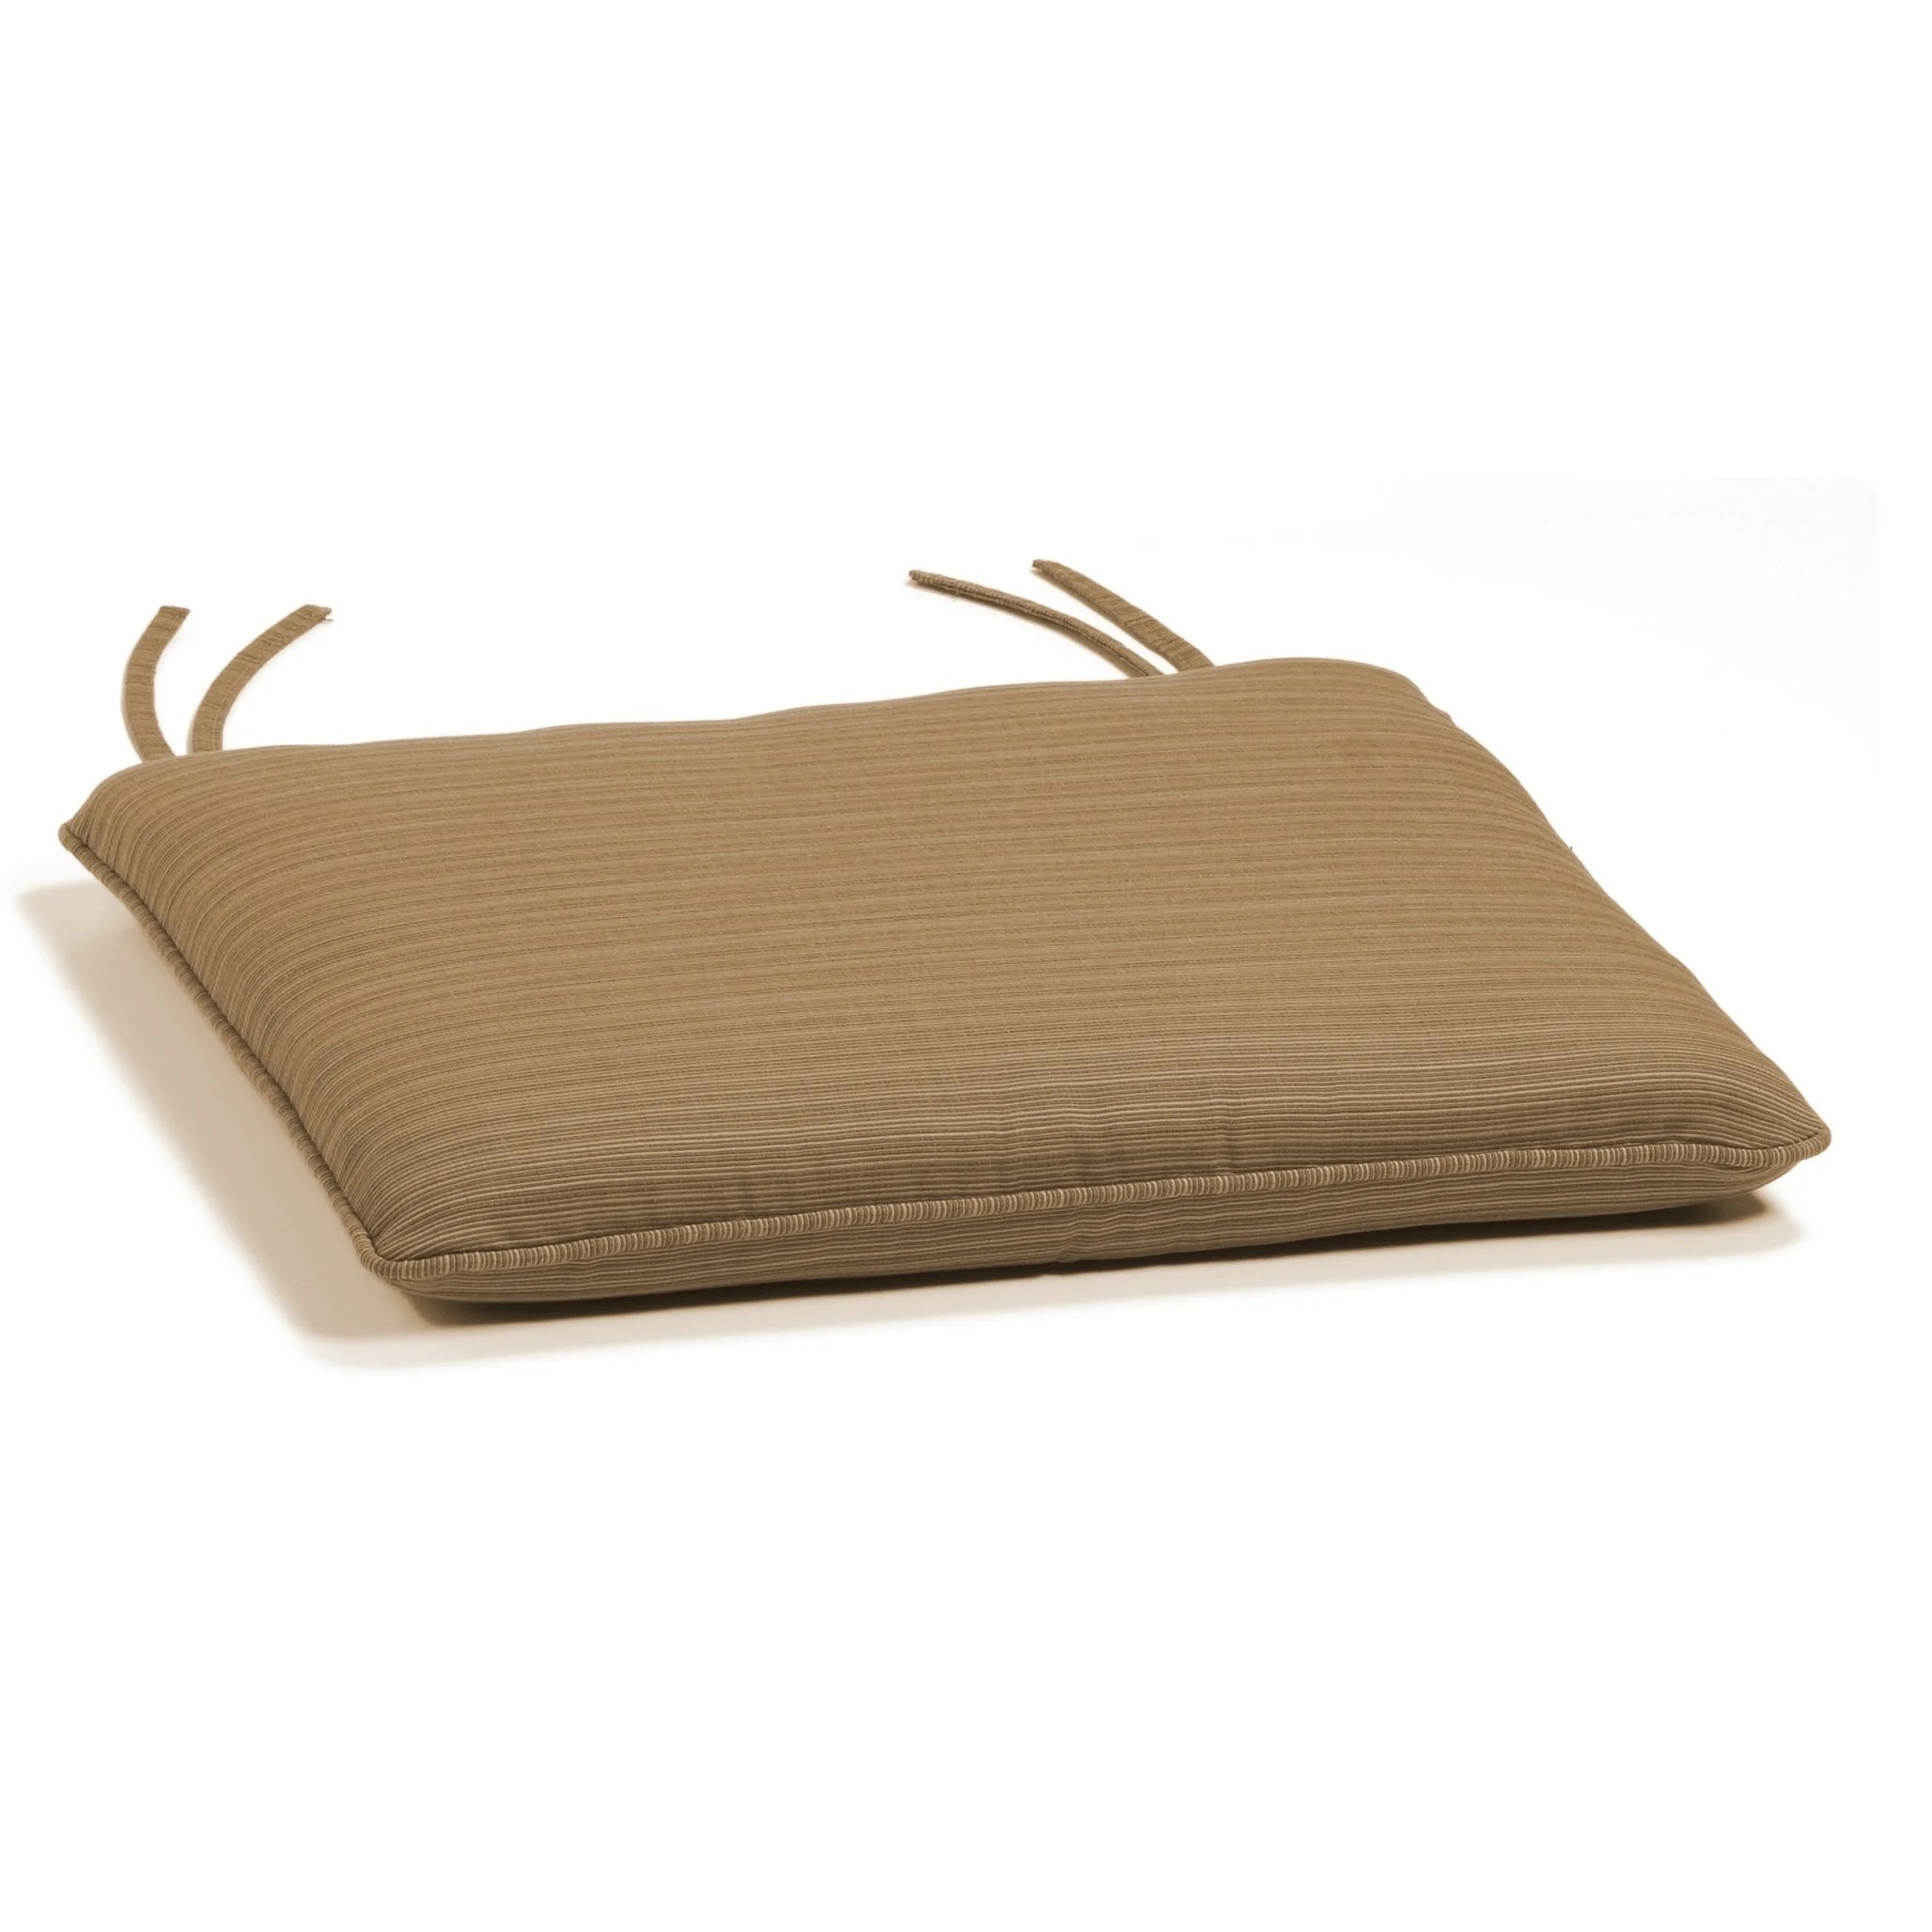 Sunbrella Adirondack Chair Cushions Oxford Garden Sunbrella Cushion For Adirondack Chair Ebay